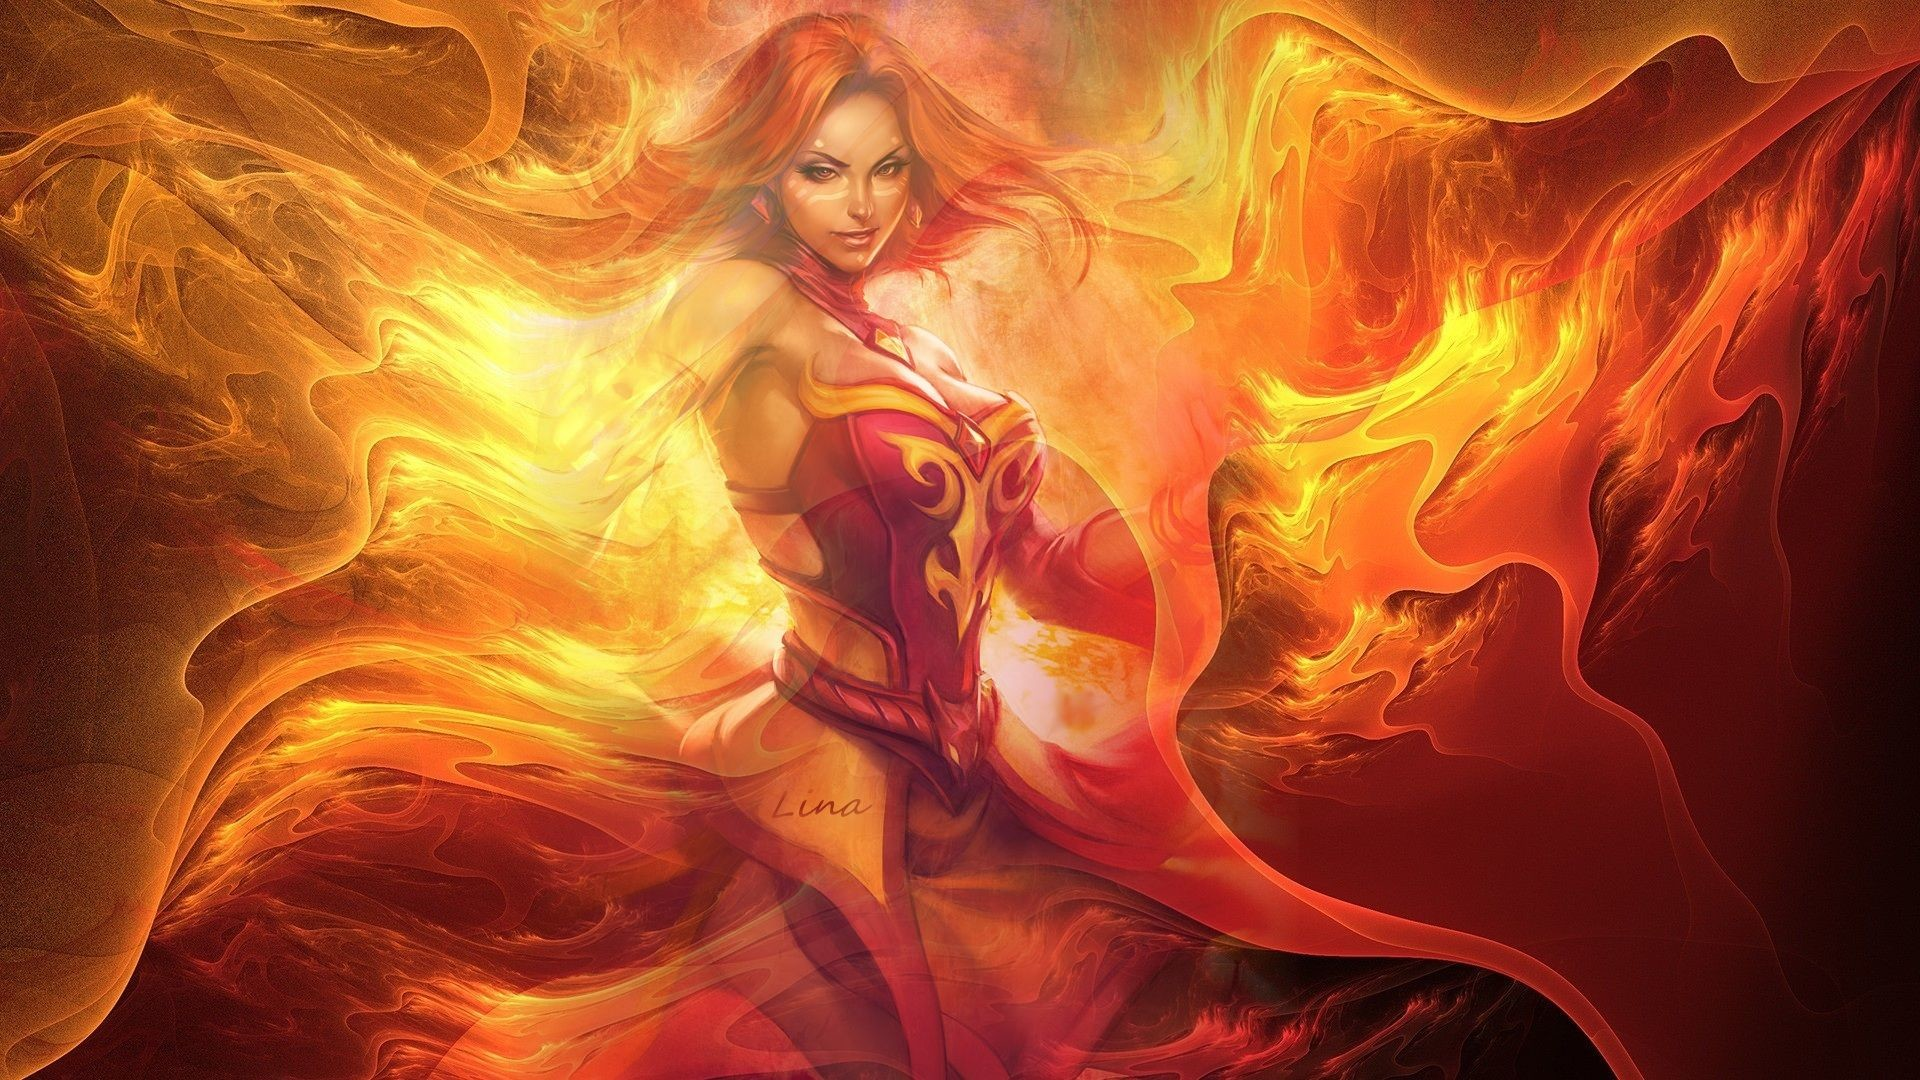 1920x1080 Dota 2 Lina Slayer Pictures Wallpaper